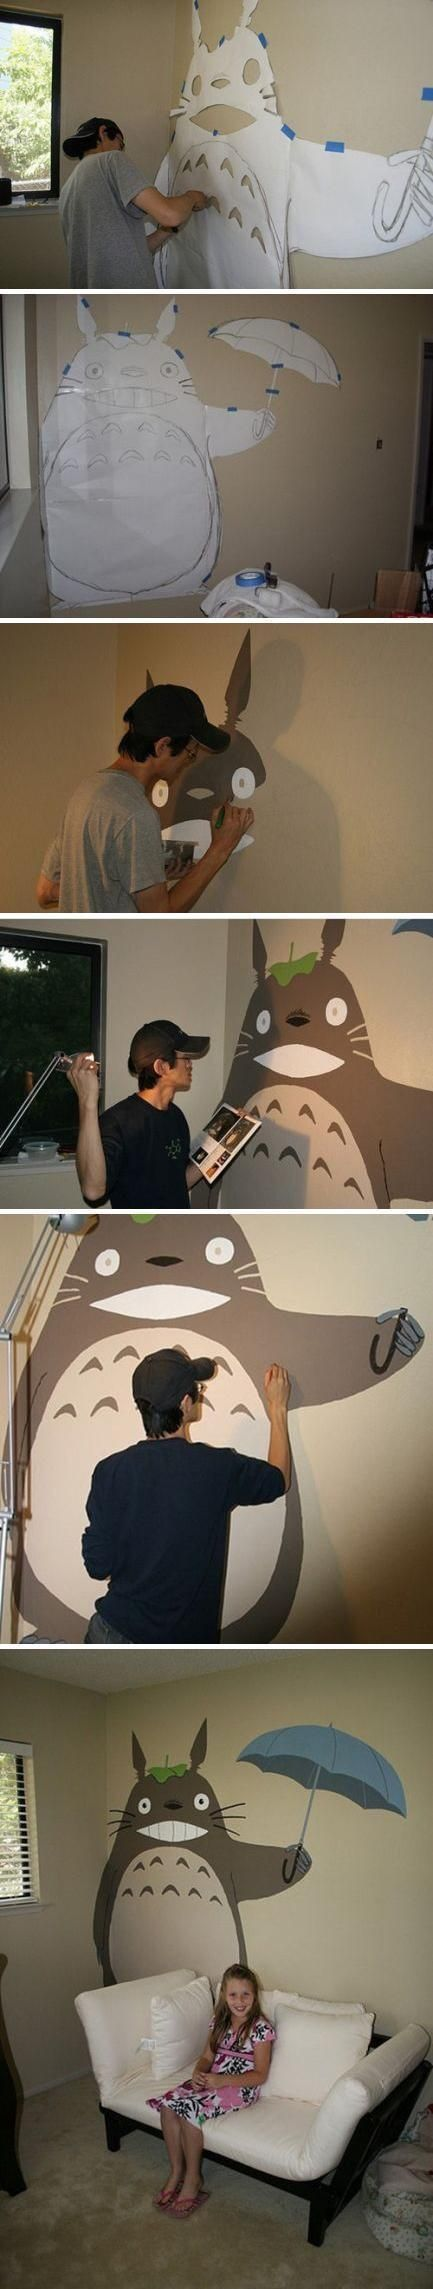 Totoro wall painting...I want this in my room *^*